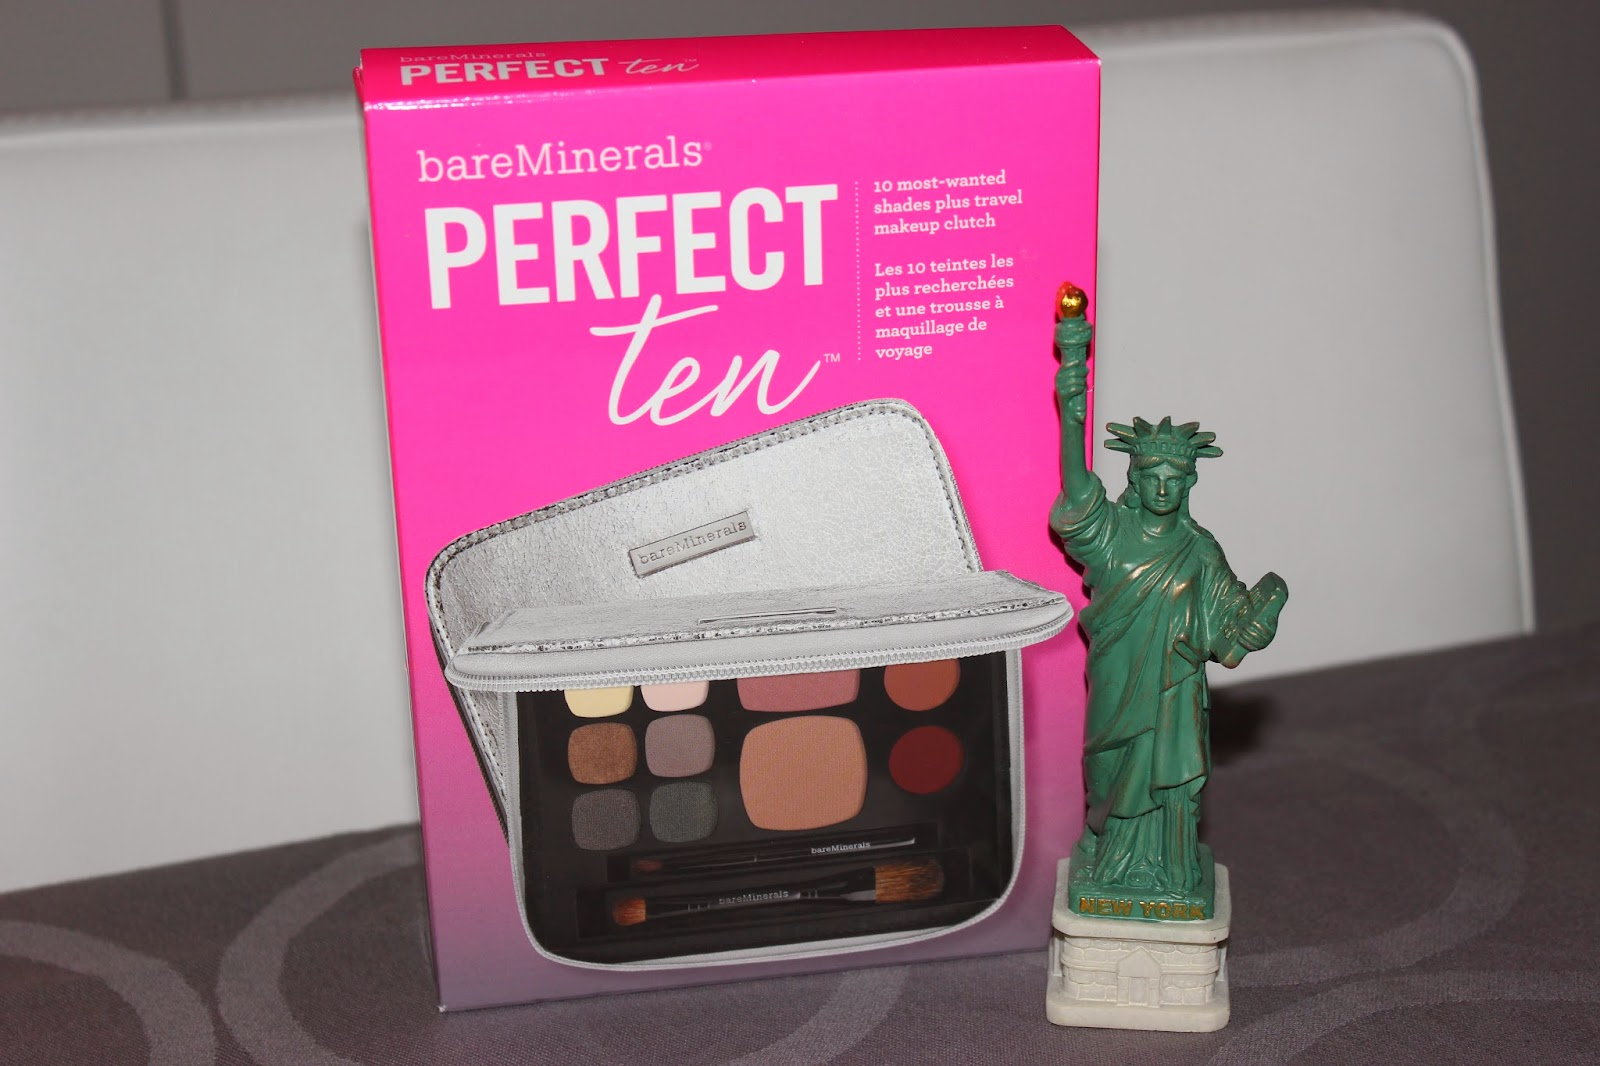 Perfect ten bareMinerals